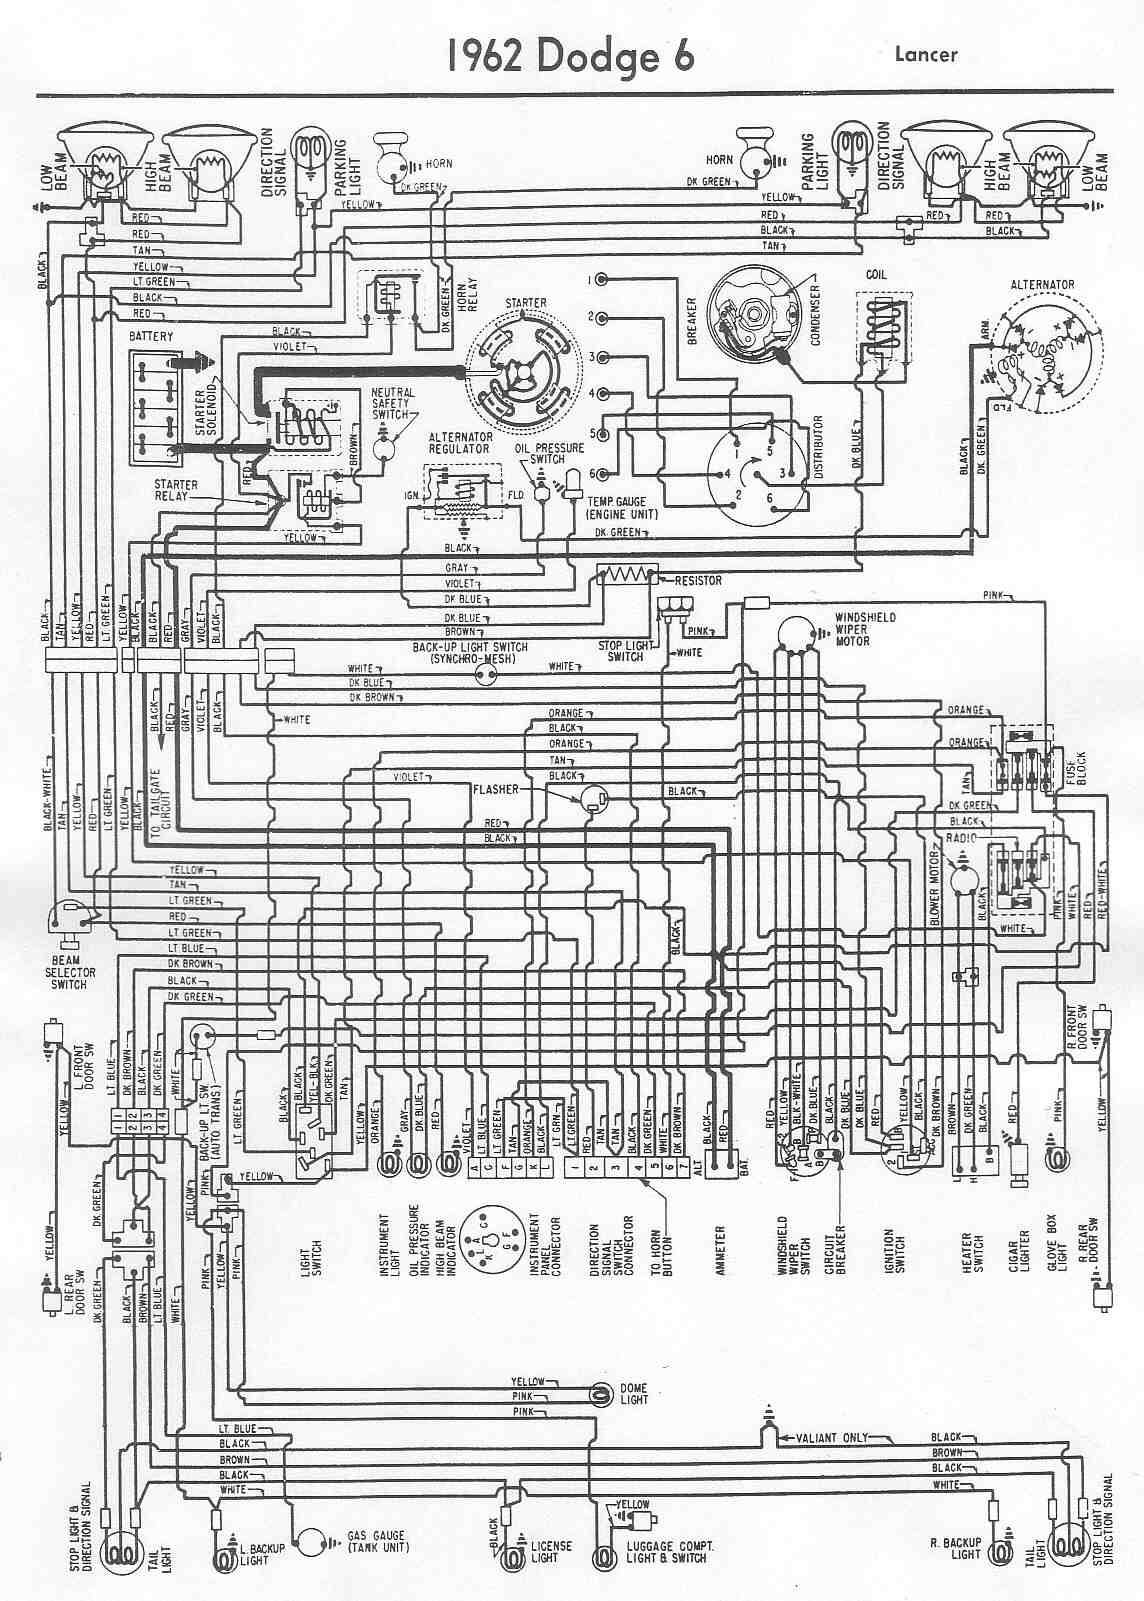 1994 Dodge Viper Wiring Diagram Product Diagrams 3606 Alarm Car Manuals Pdf Fault Codes Rh Automotive Net 5704v Remote Start